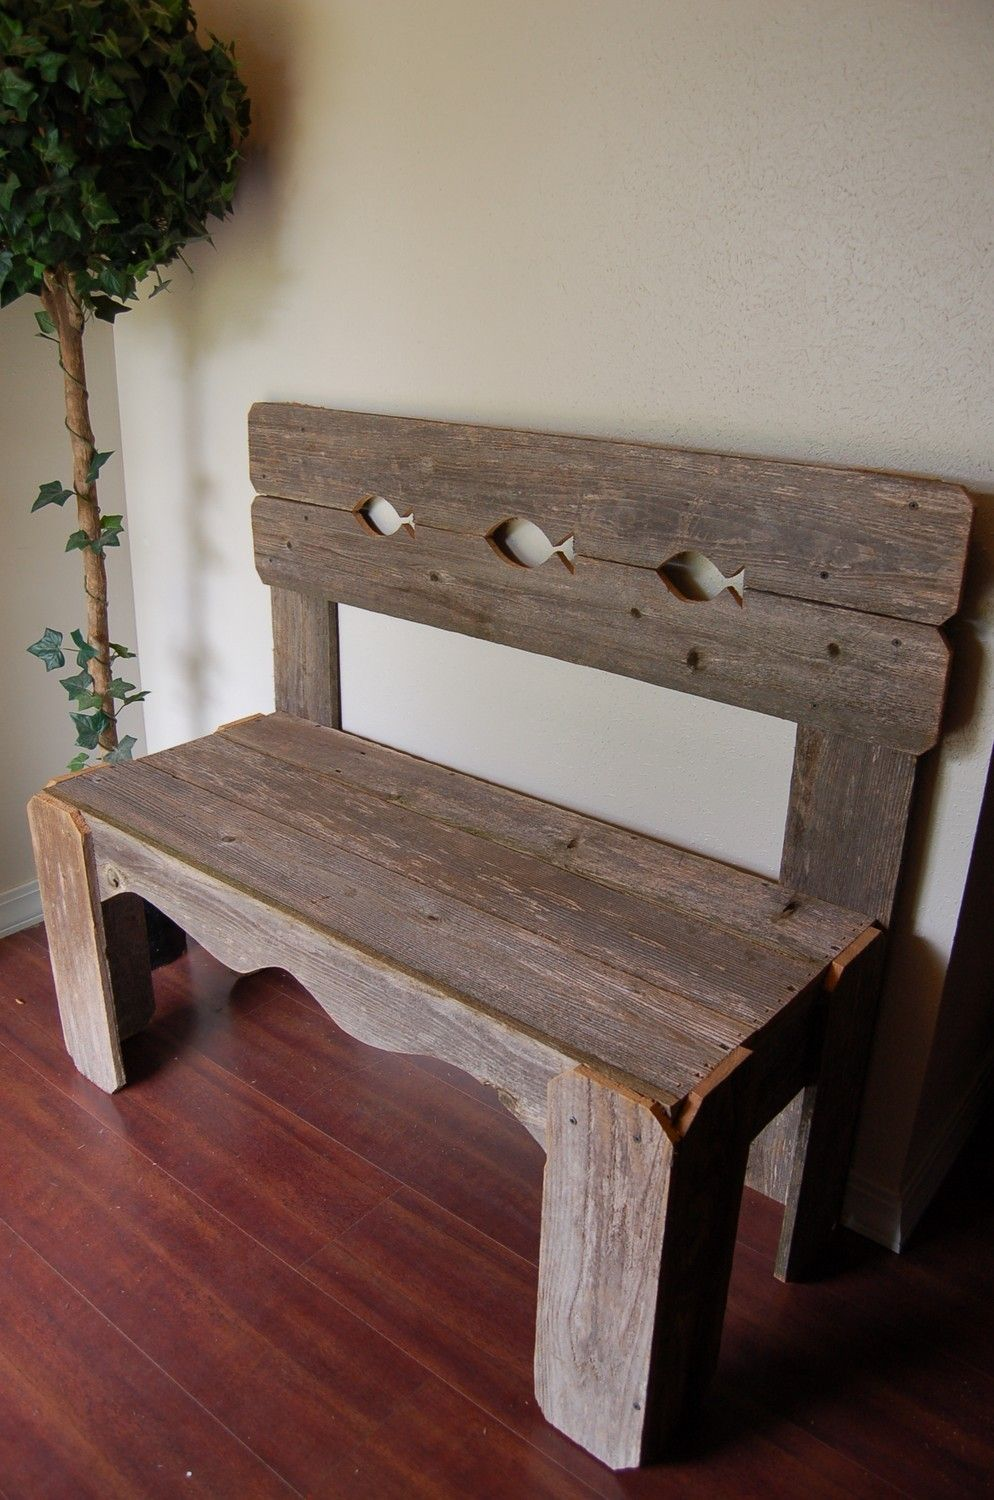 wooden fish bench recycled wood furniture recycled wood on trends minimalist diy wooden furniture that impressing your living room furniture treatment id=22207